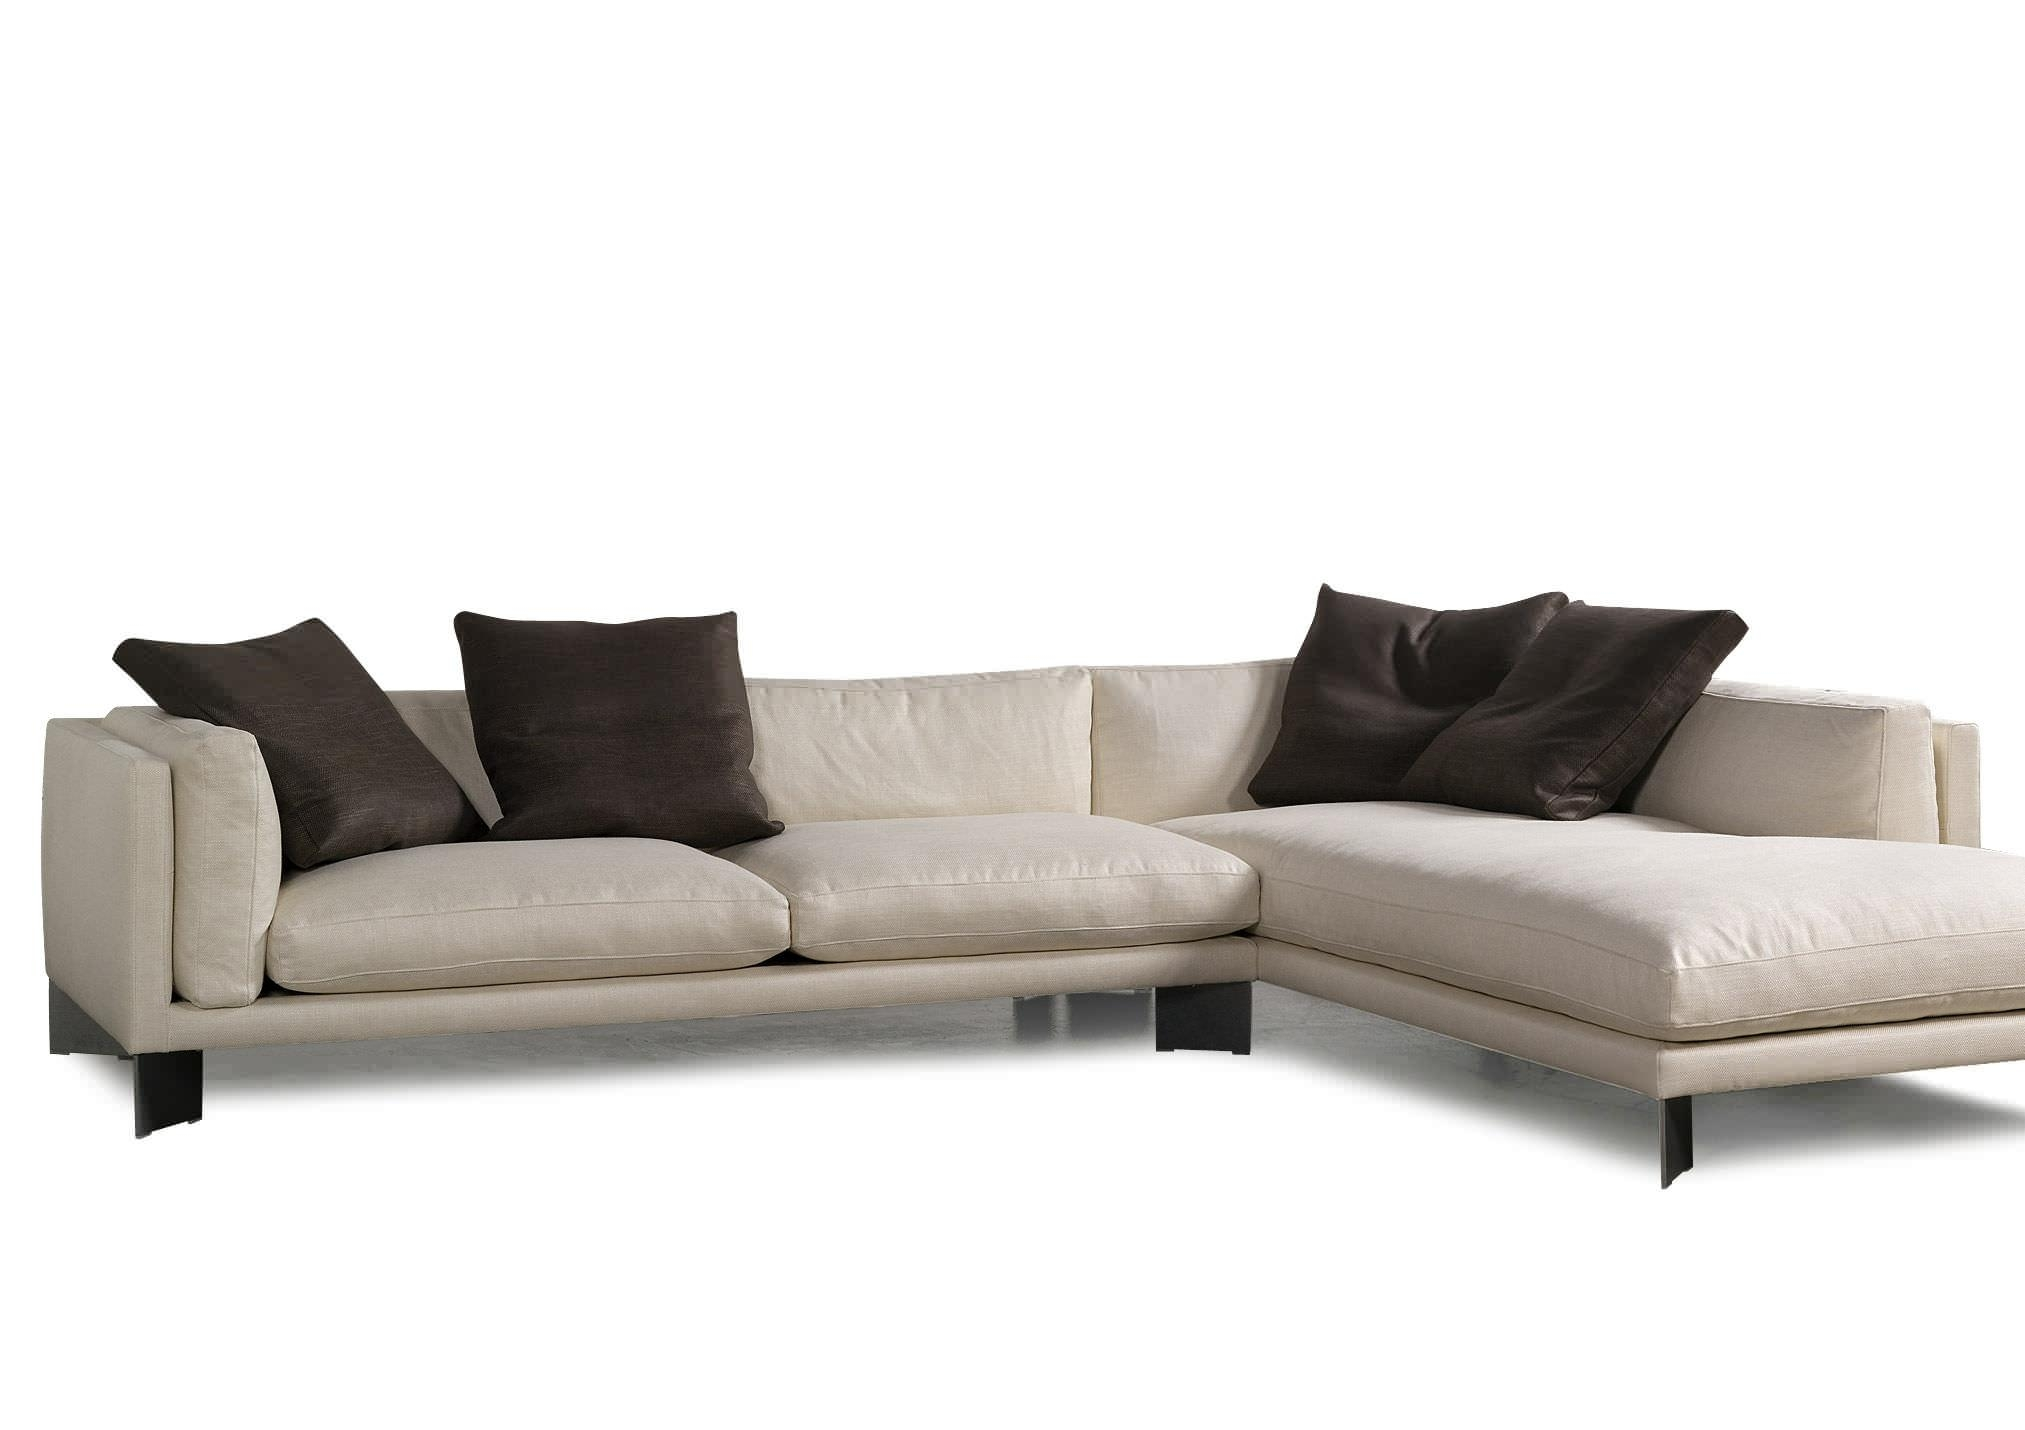 10 Cool Goose Down Sectional Sofa Snapshot Ideas : Lawsh pertaining to Goose Down Sectional Sofa